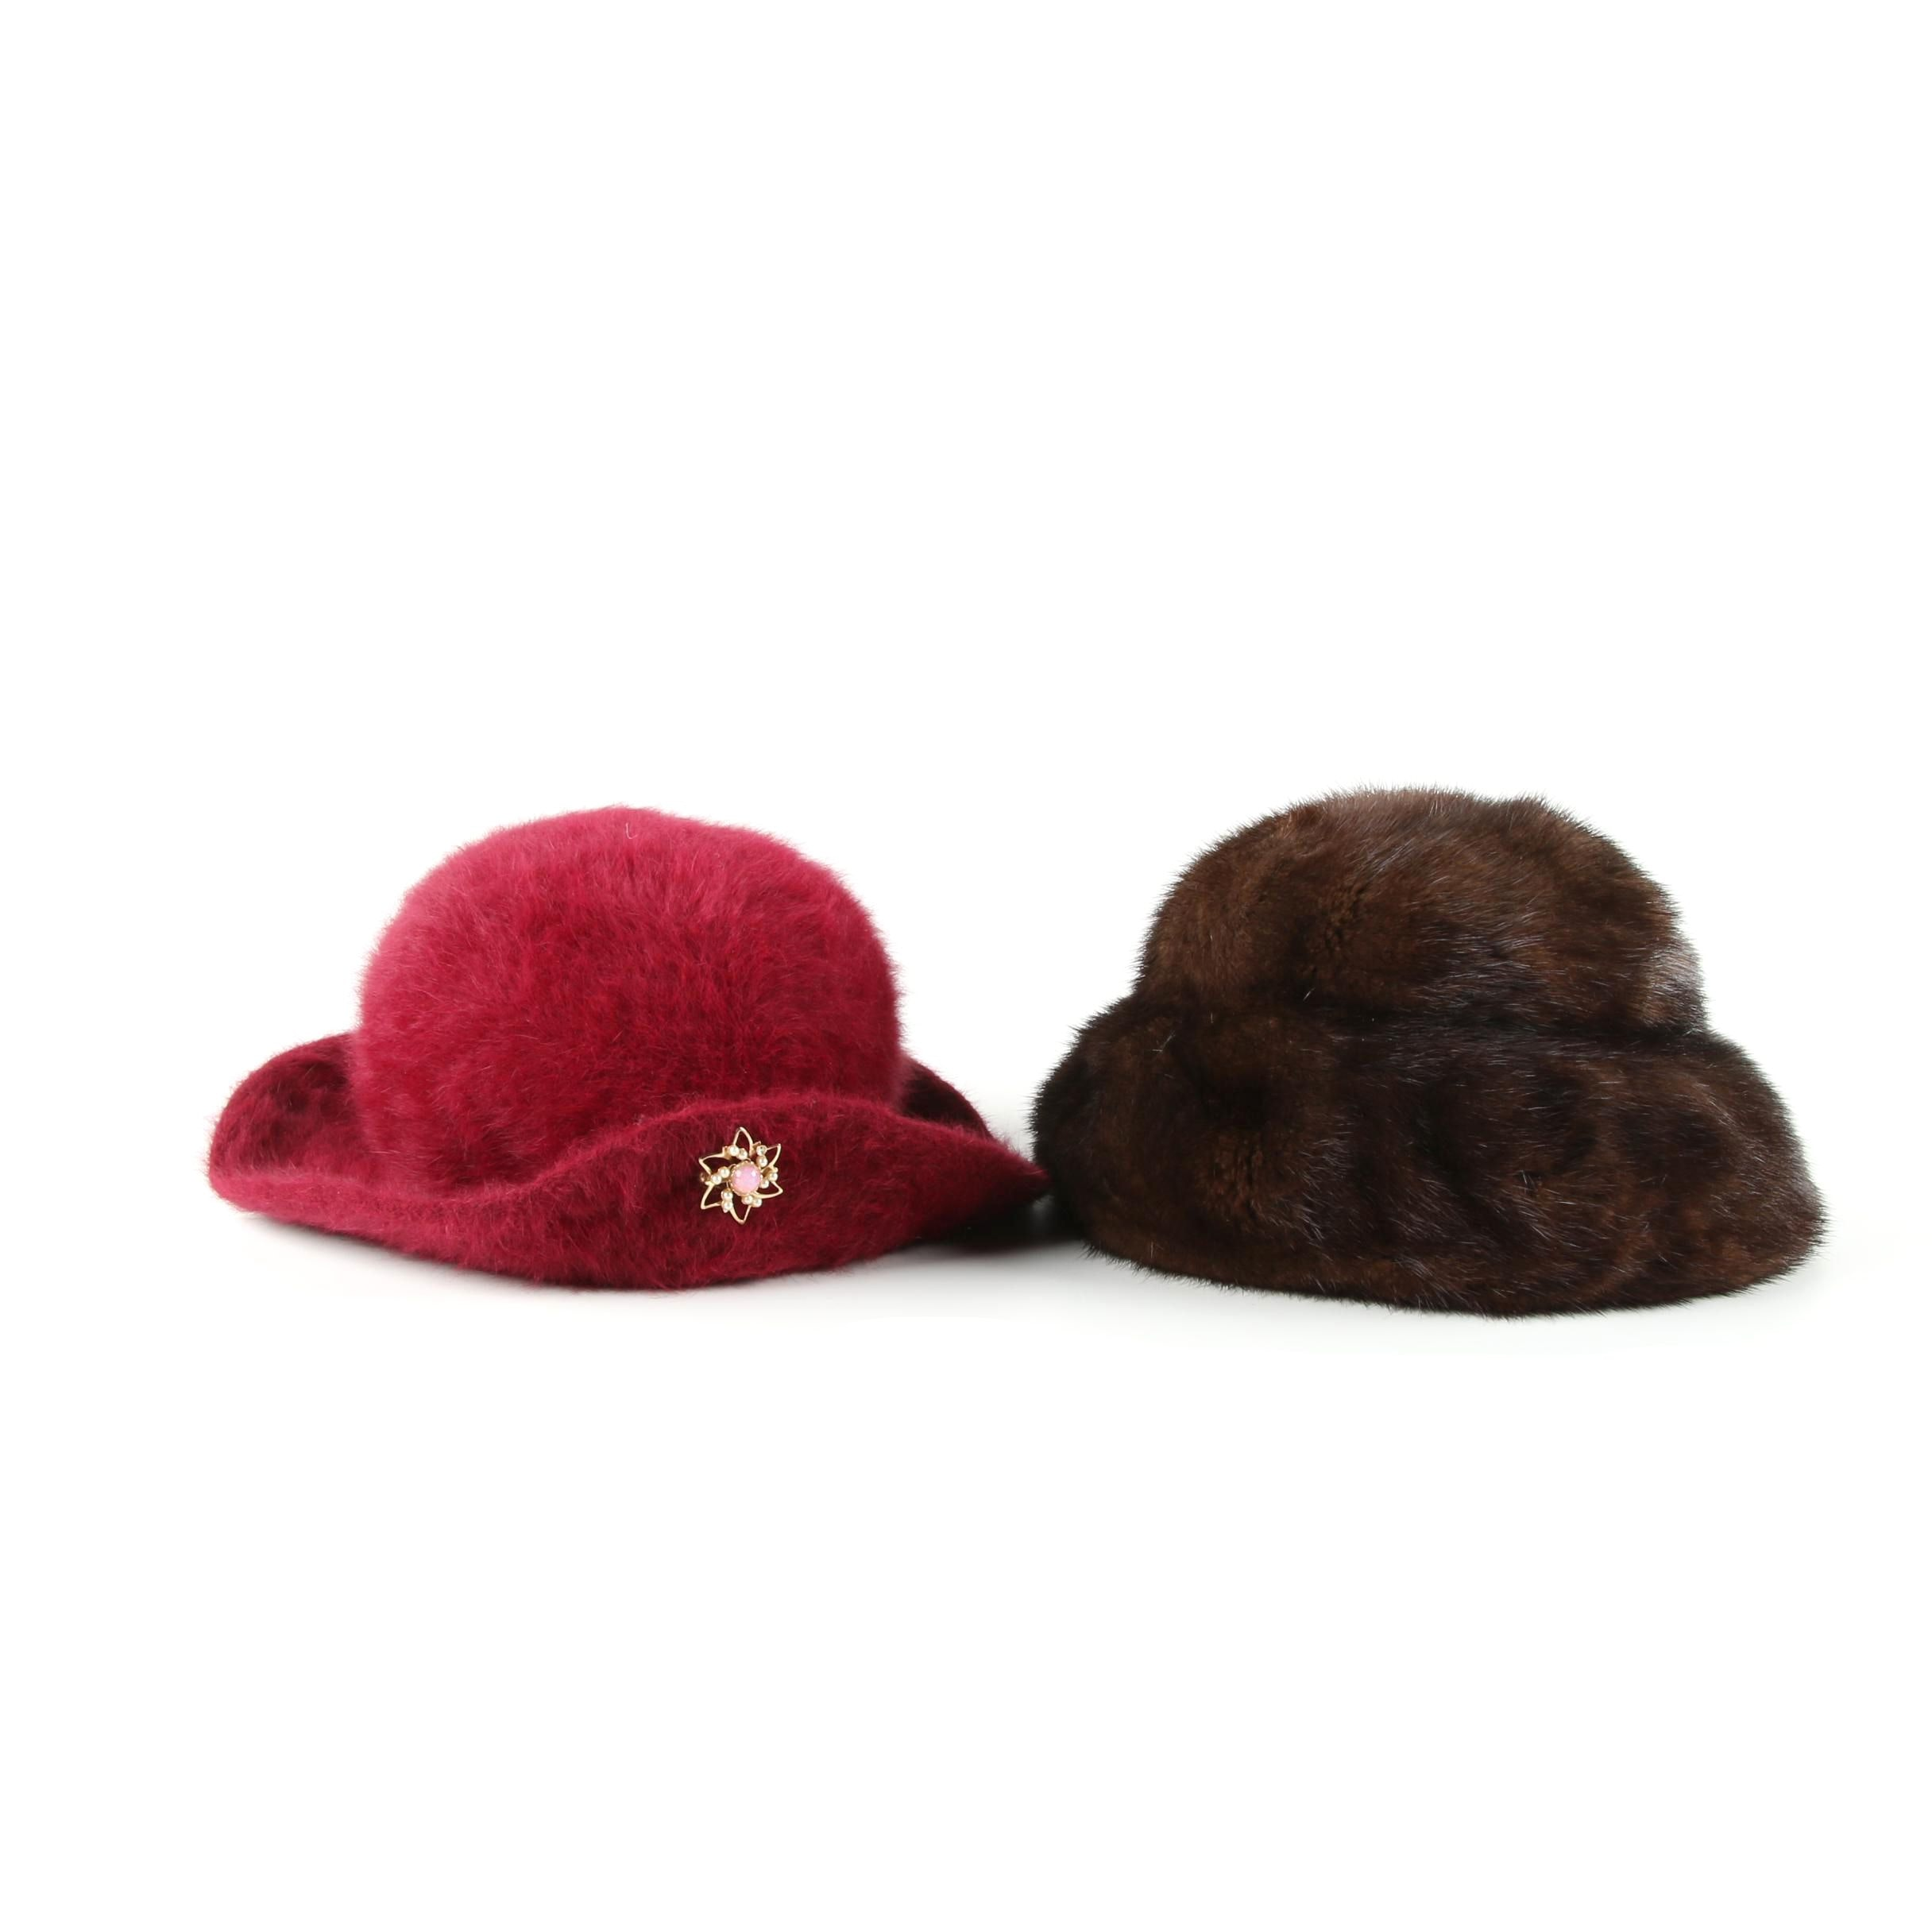 Women's Mink Fur and Halper Brothers Dyed Rabbit Fur Cloche Hats